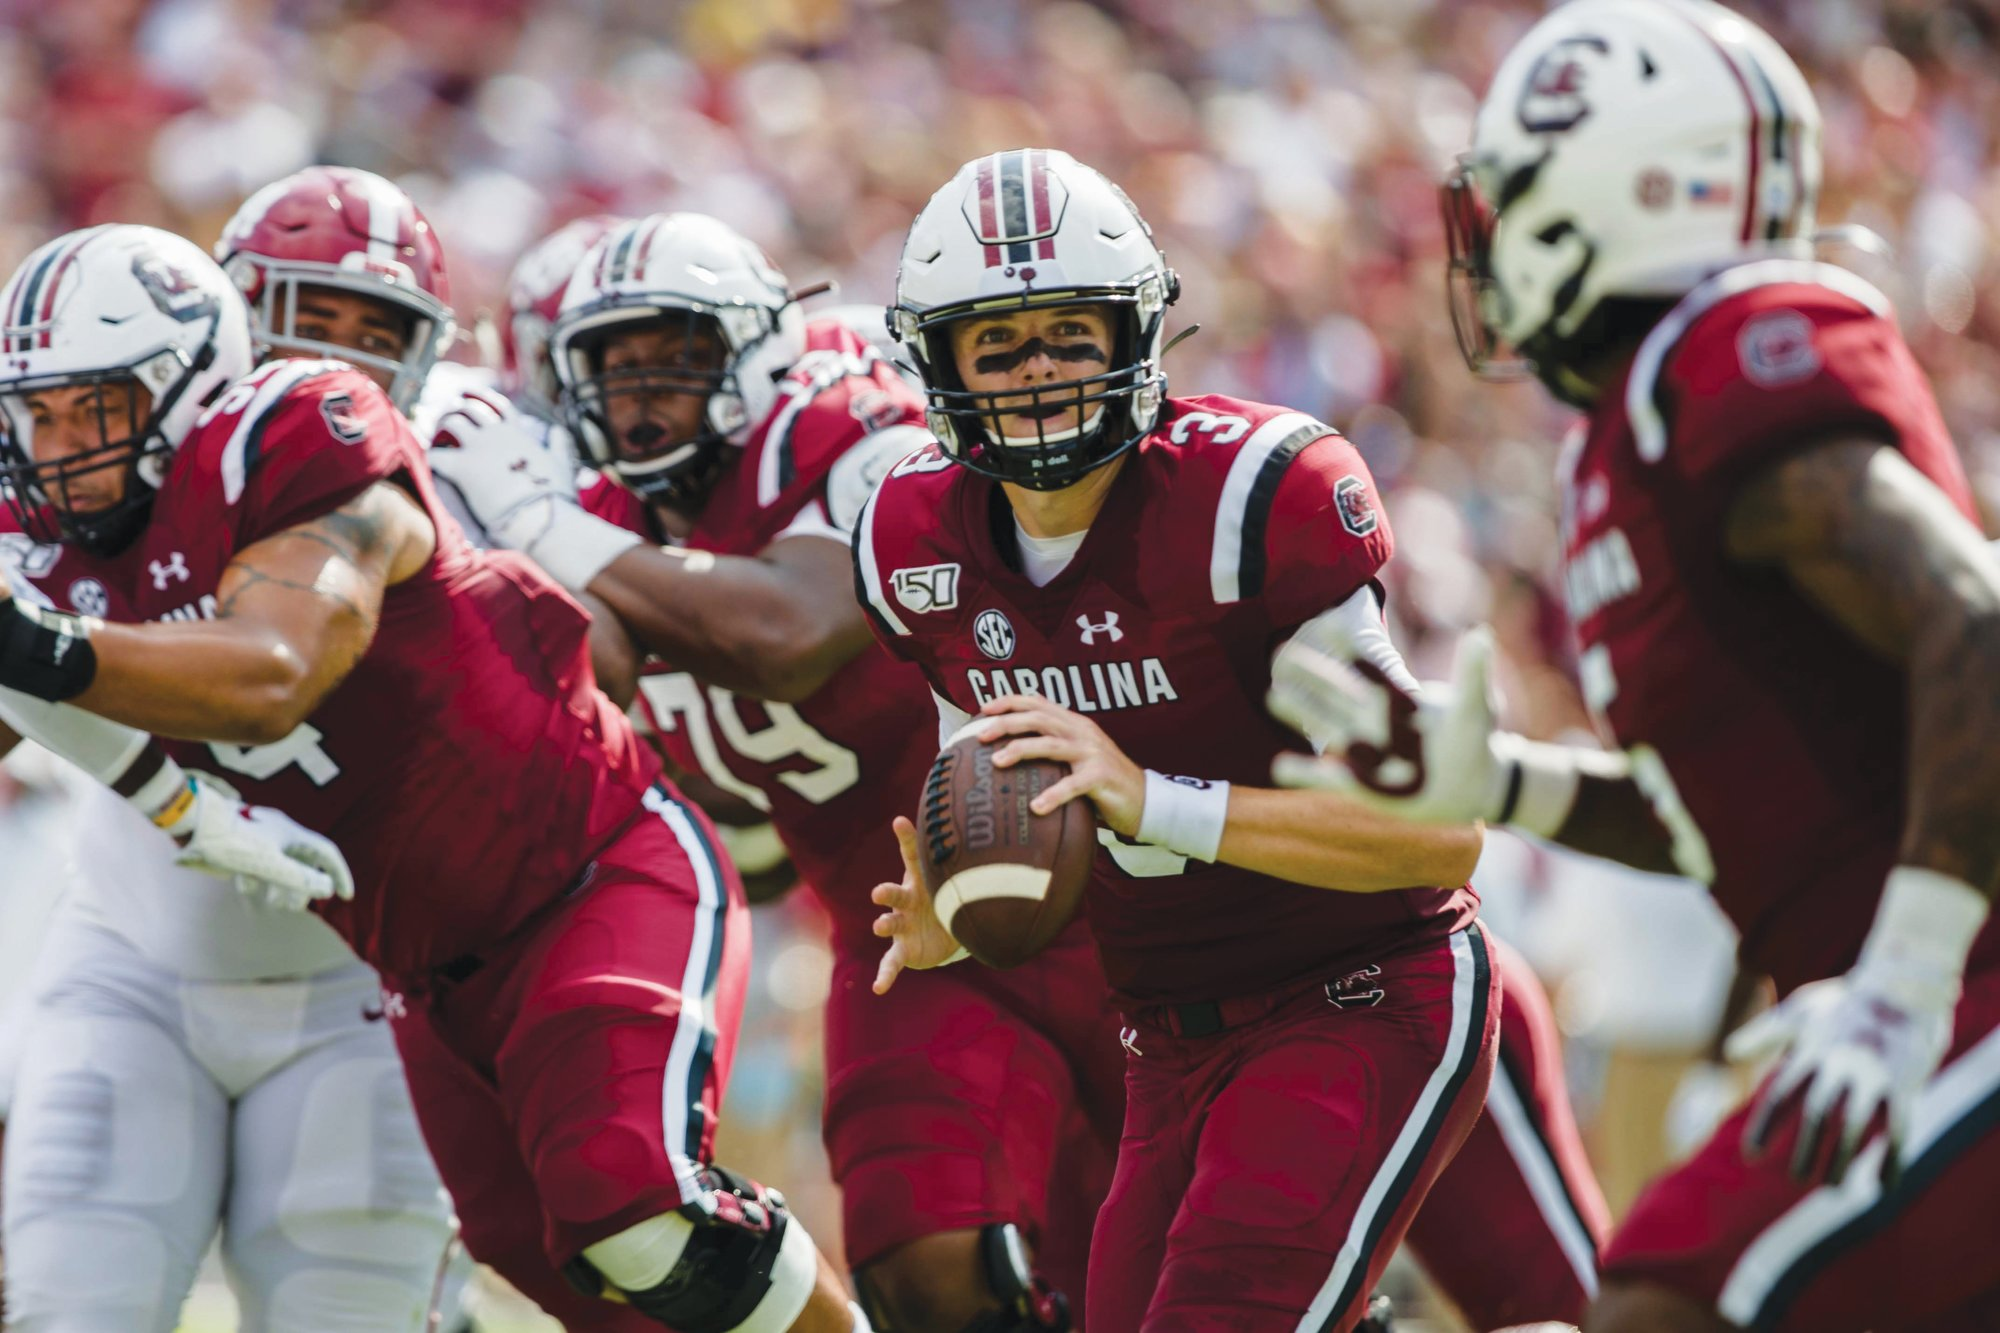 MICAH GREENSouth Carolina quarterback Ryan Hilinski, center, looks to pitch the ball to running back Rico Dowdle during the Gamecocks' 47-23 loss to Alabama on Saturday in Columbia. USC will be on the road against Missouri this Saturday.